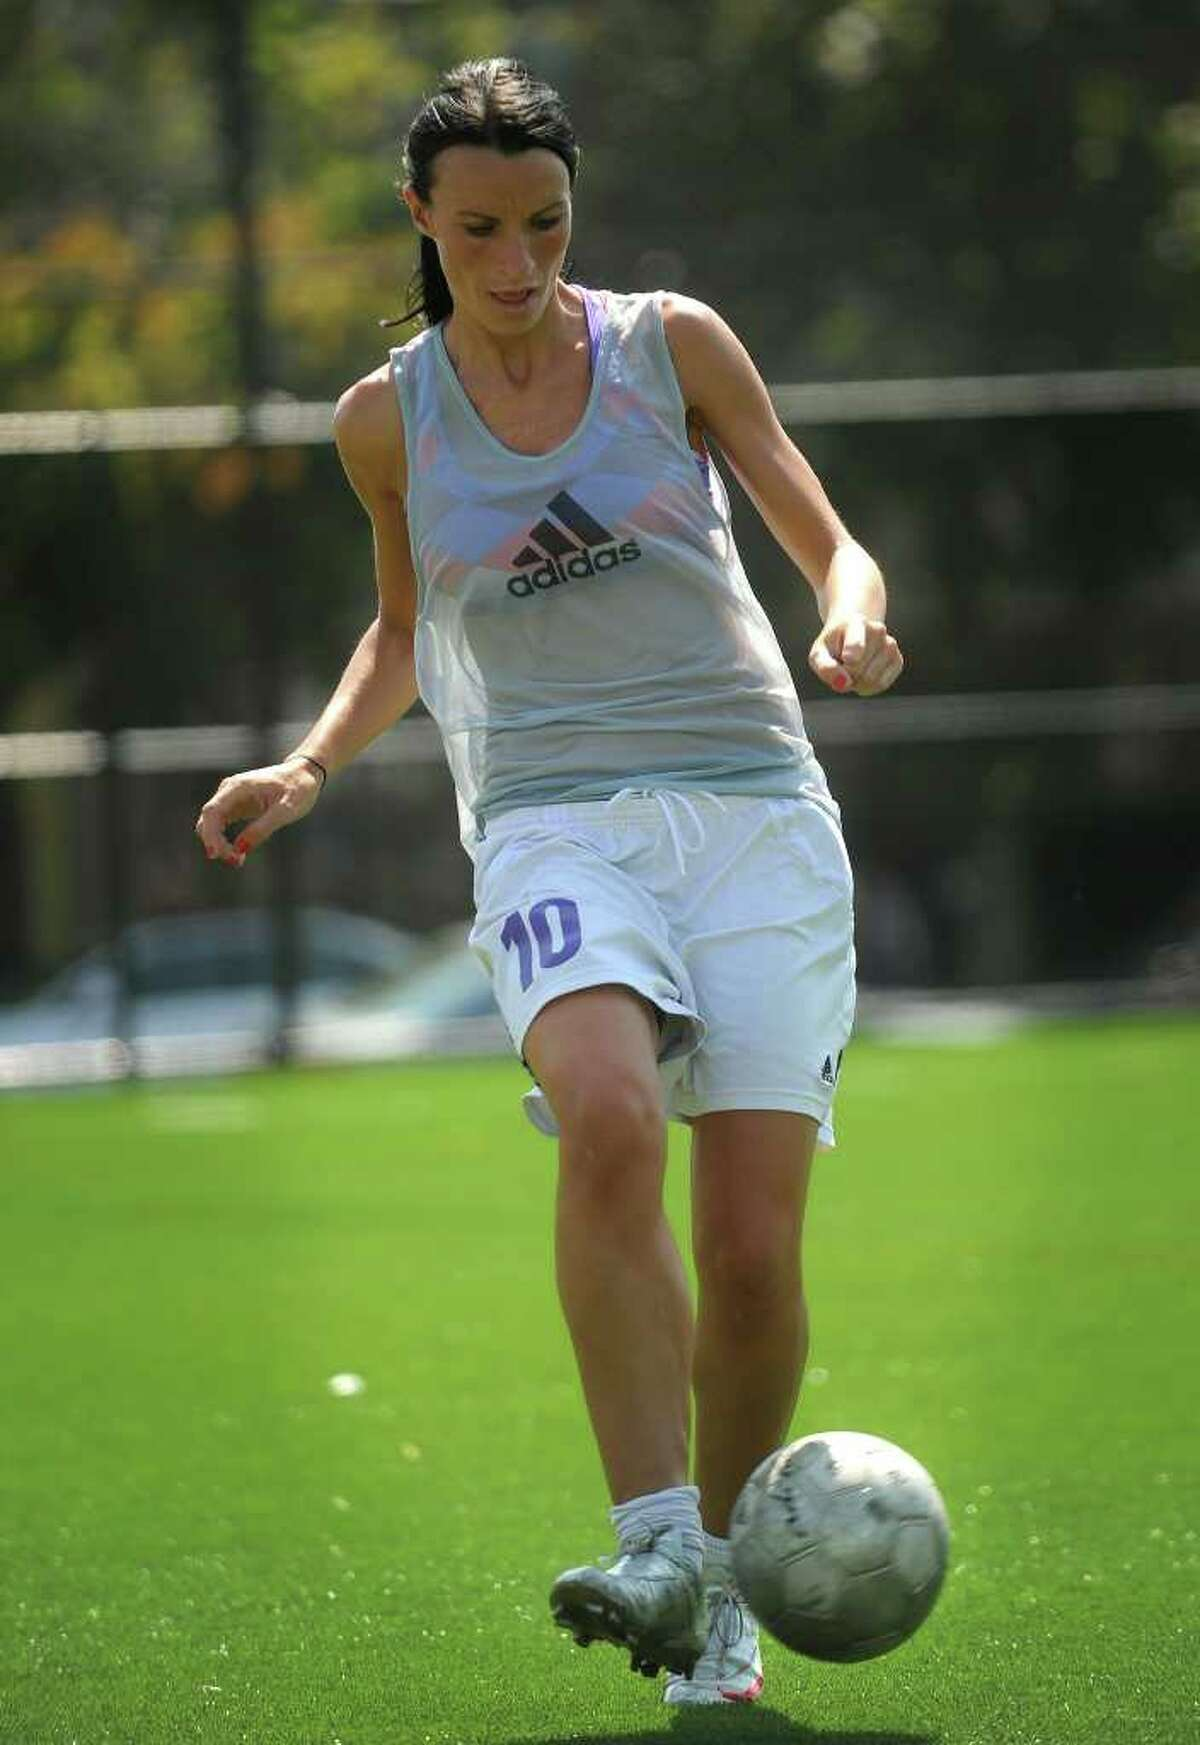 University of Bridgeport senior forward Linda Velaj takes part in practice drills with teammates at Knight Field on Tuesday, August 31, 2010.